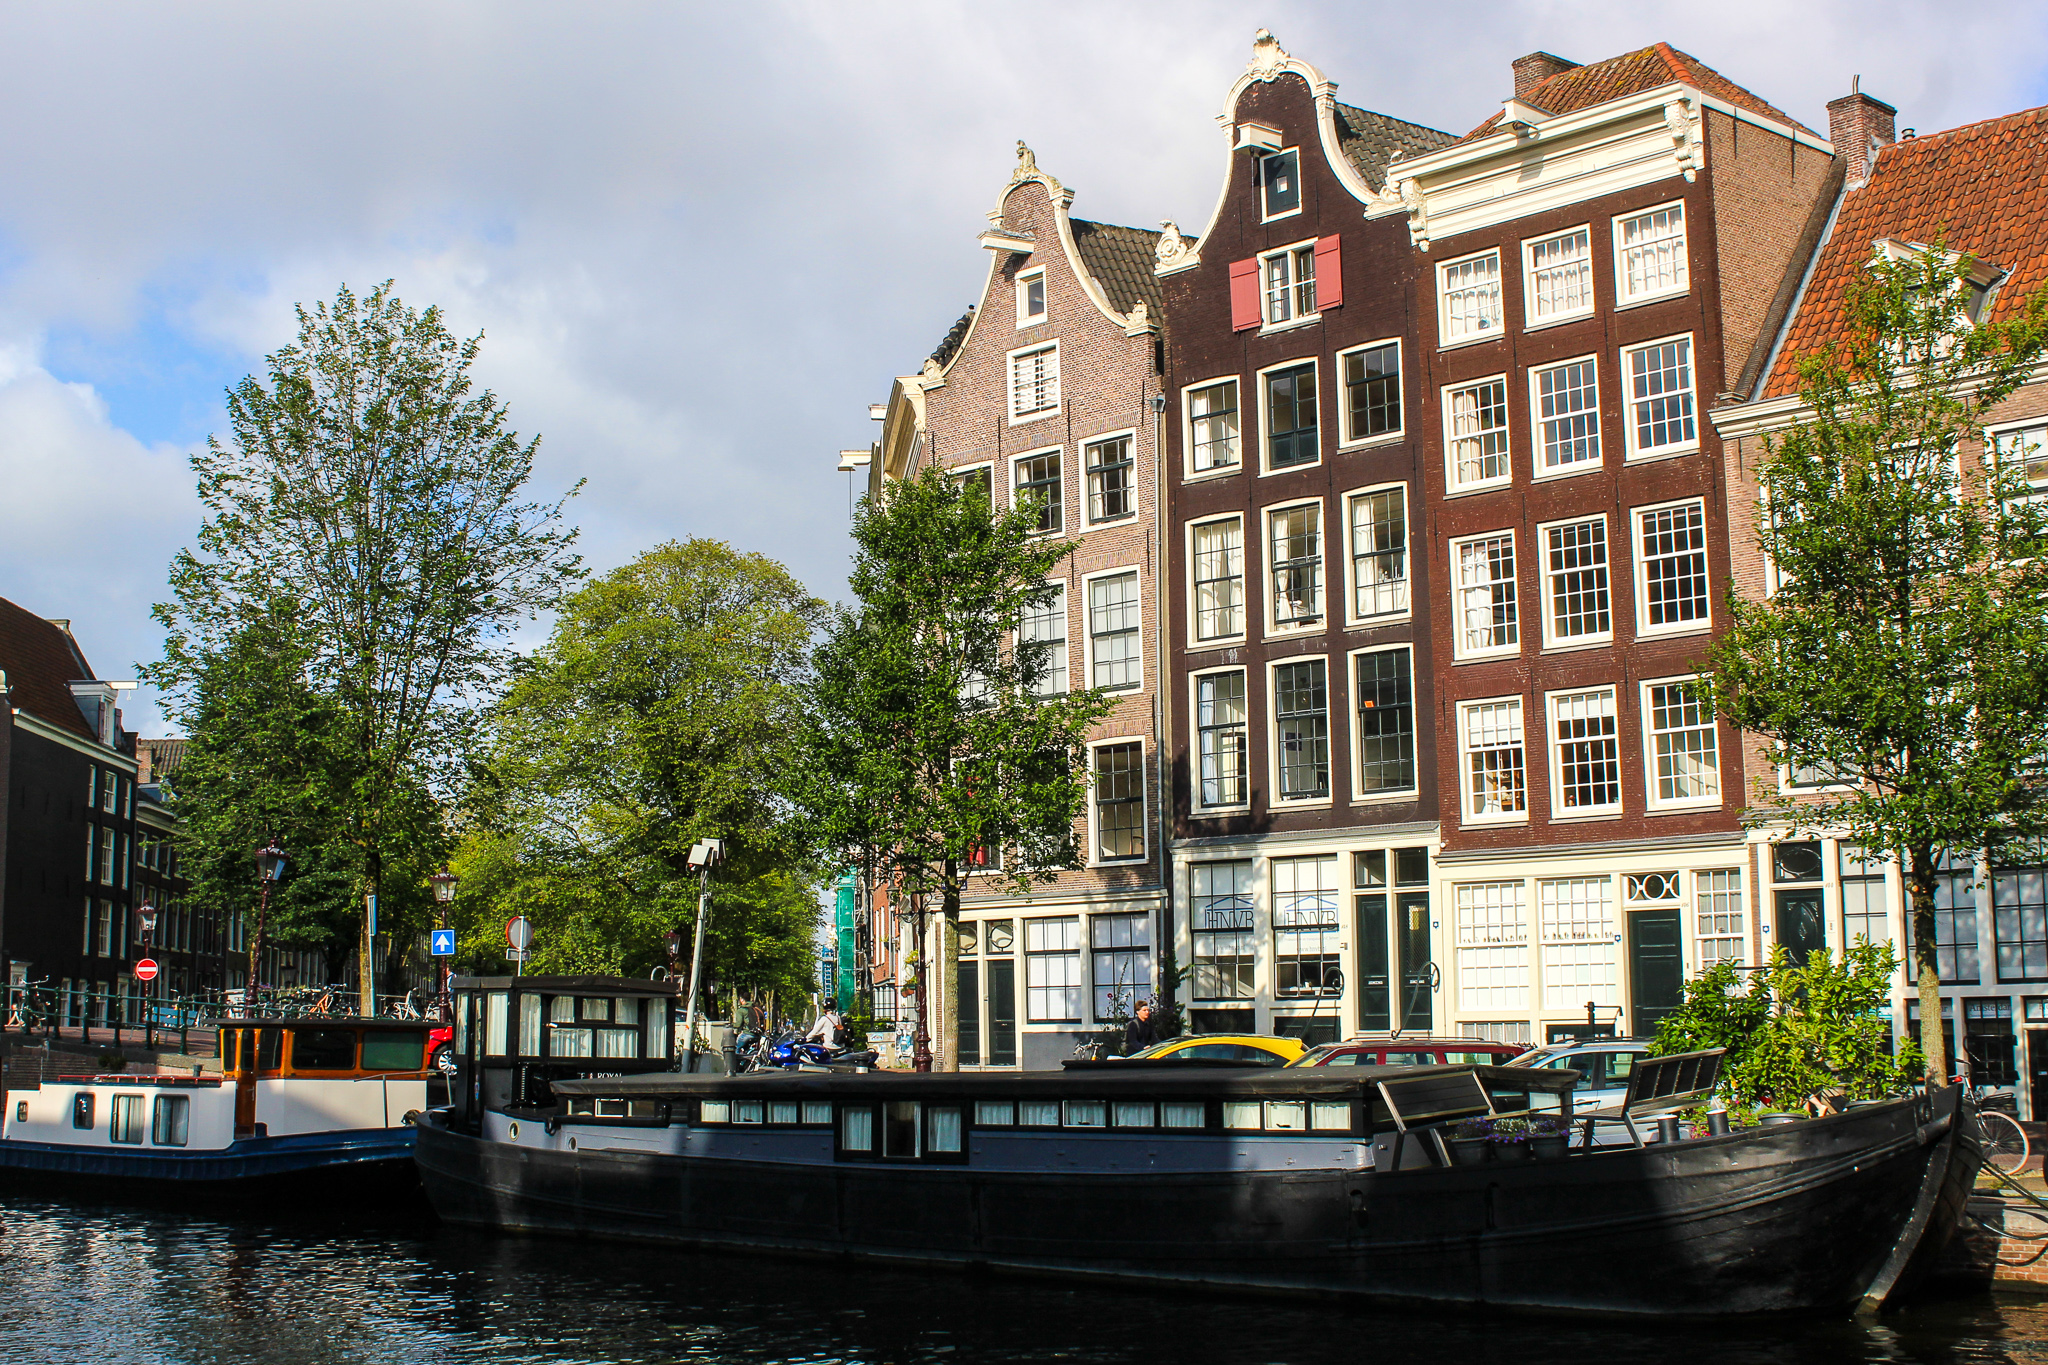 exploring jordaan is what to do in amsterdam in 2 days